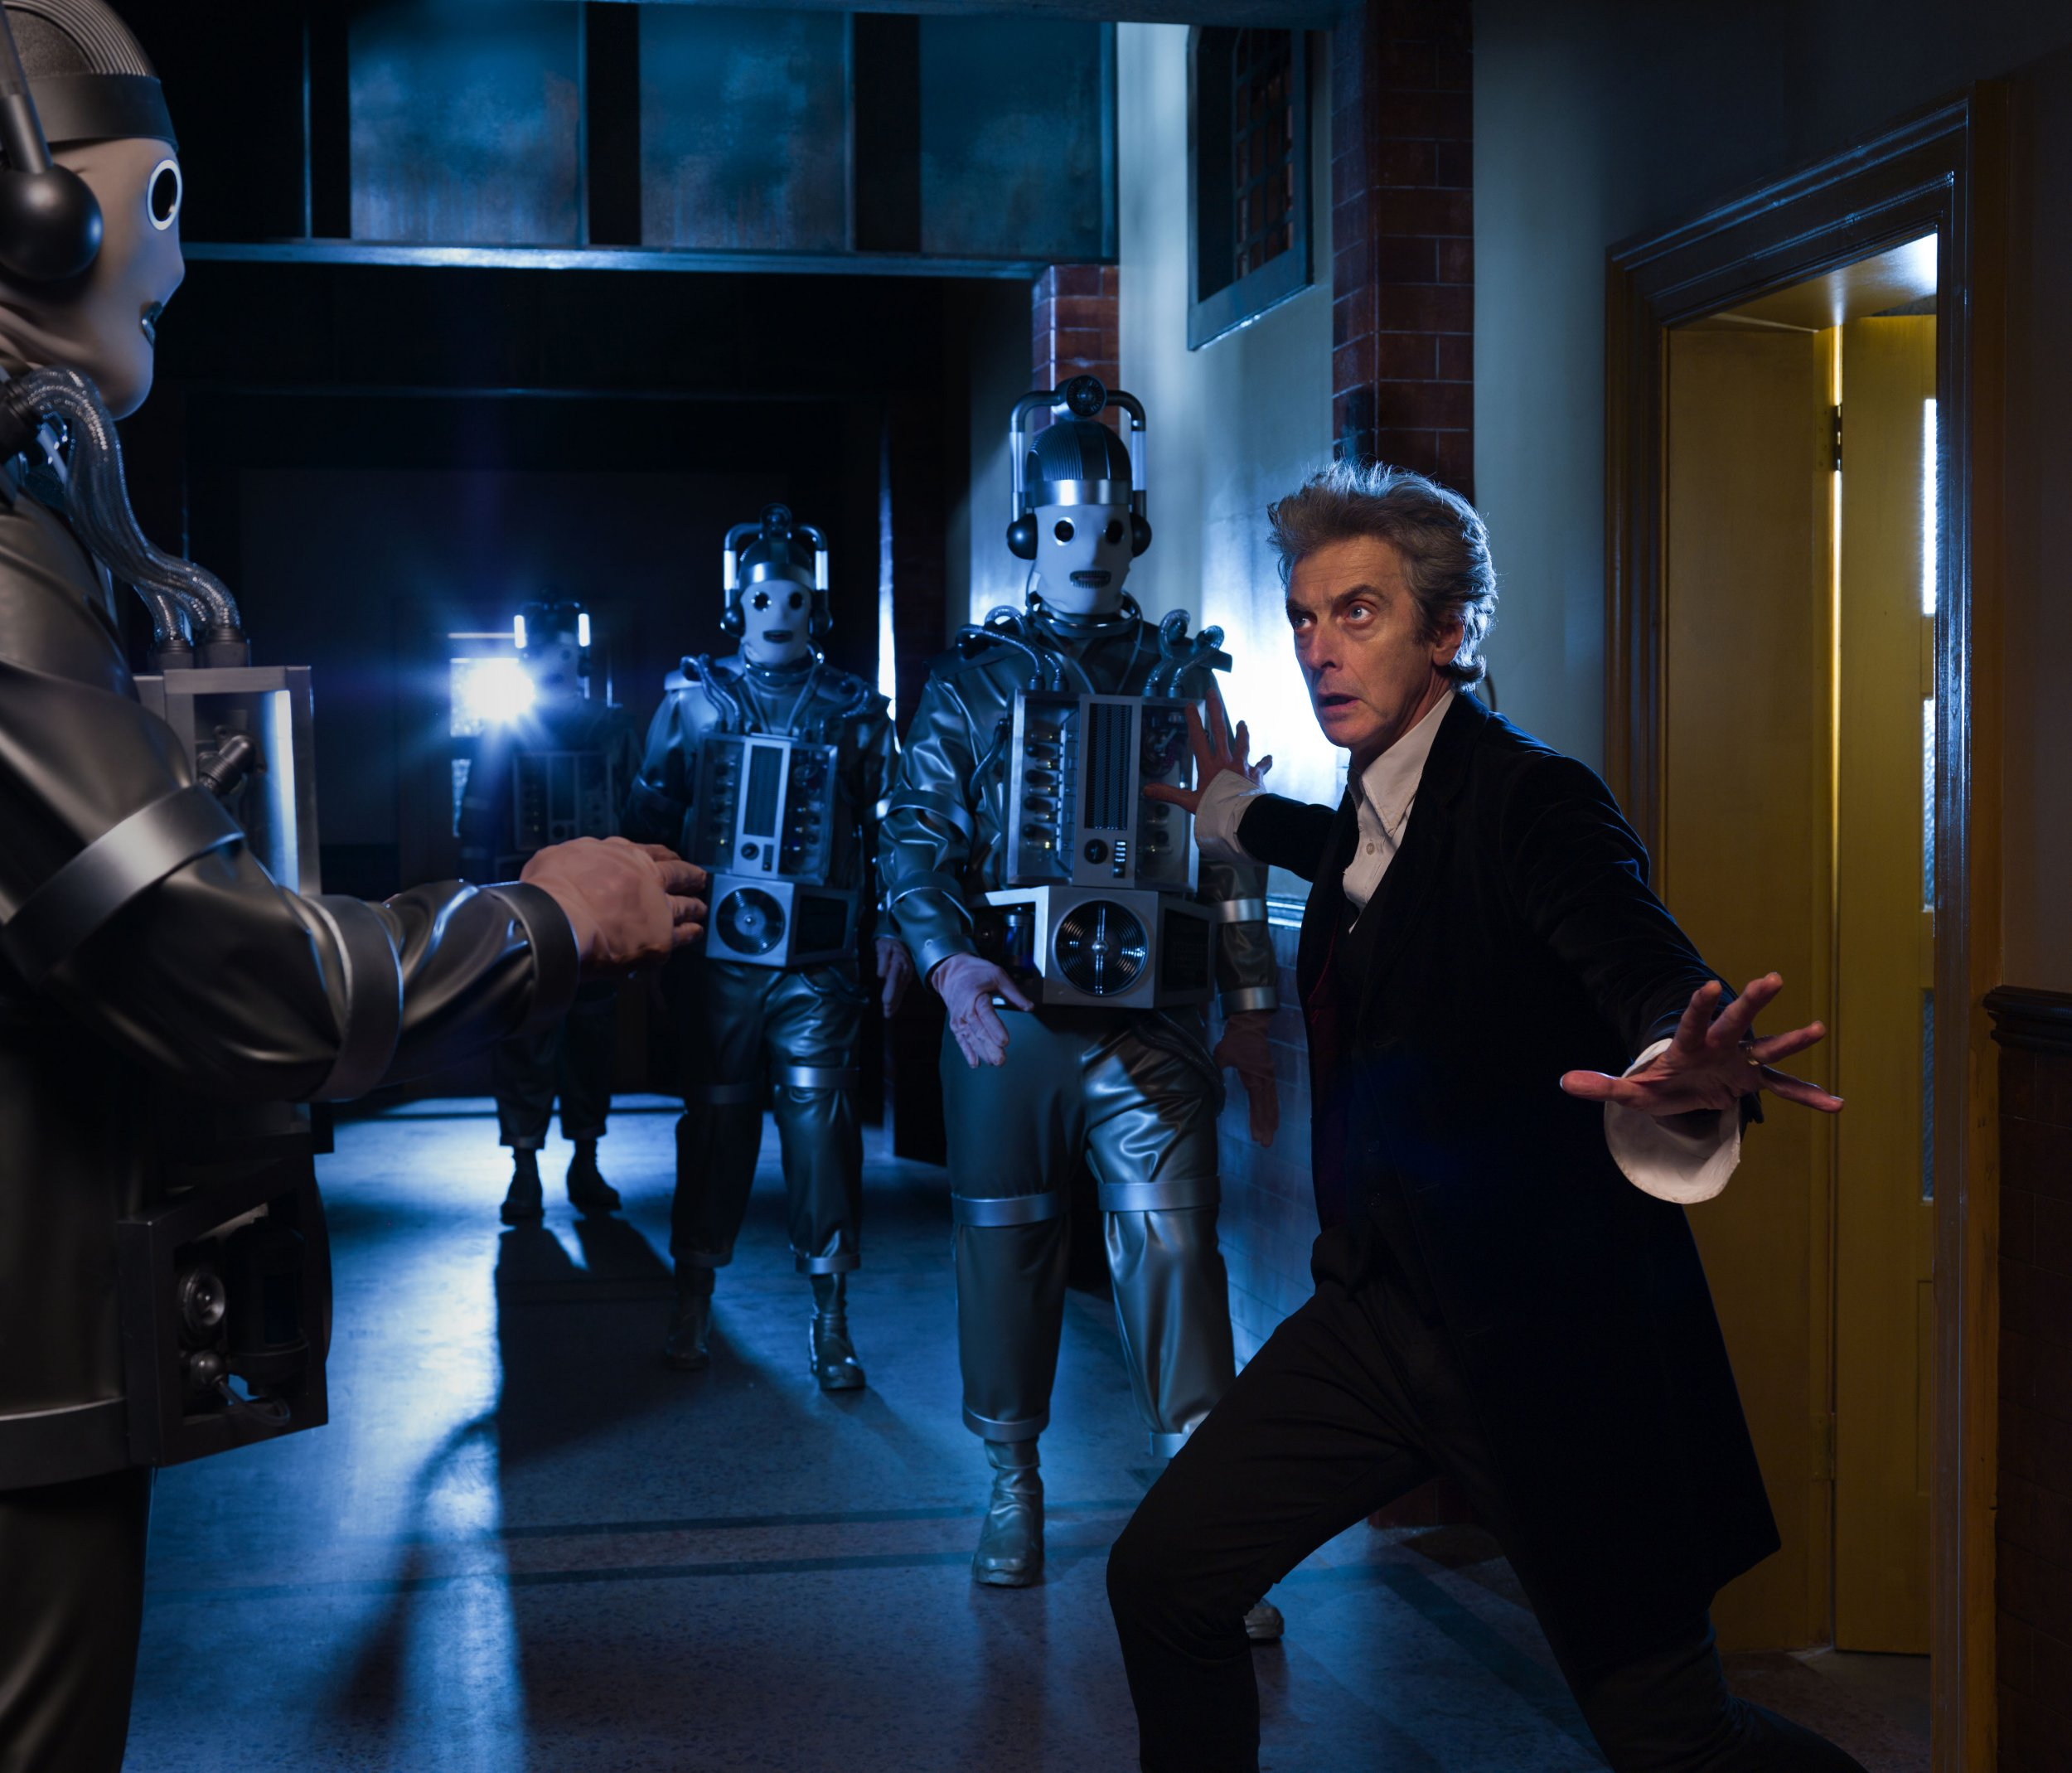 For use in UK, Ireland or Benelux countries only Undated BBC handout photo of Peter Capaldi as Doctor Who with Mondasian Cybermen - a classic enemy that has not been seen on the show for more than 50. PRESS ASSOCIATION Photo. Issue date: Monday March 6, 2017. The creepy masked creatures, which Capaldi has described as his favourite Doctor Who foe, will return in episodes 11 and 12 of the 10th series.Filming of the episodes, written by Steven Moffatt and directed by Rachel Talalay, is currently under way in Cardiff. See PA story SHOWBIZ DoctorWho. Photo credit should read: Simon Ridgway/BBC/PA Wire NOTE TO EDITORS: Not for use more than 21 days after issue. You may use this picture without charge only for the purpose of publicising or reporting on current BBC programming, personnel or other BBC output or activity within 21 days of issue. Any use after that time MUST be cleared through BBC Picture Publicity. Please credit the image to the BBC and any named photographer or independent programme maker, as described in the caption.